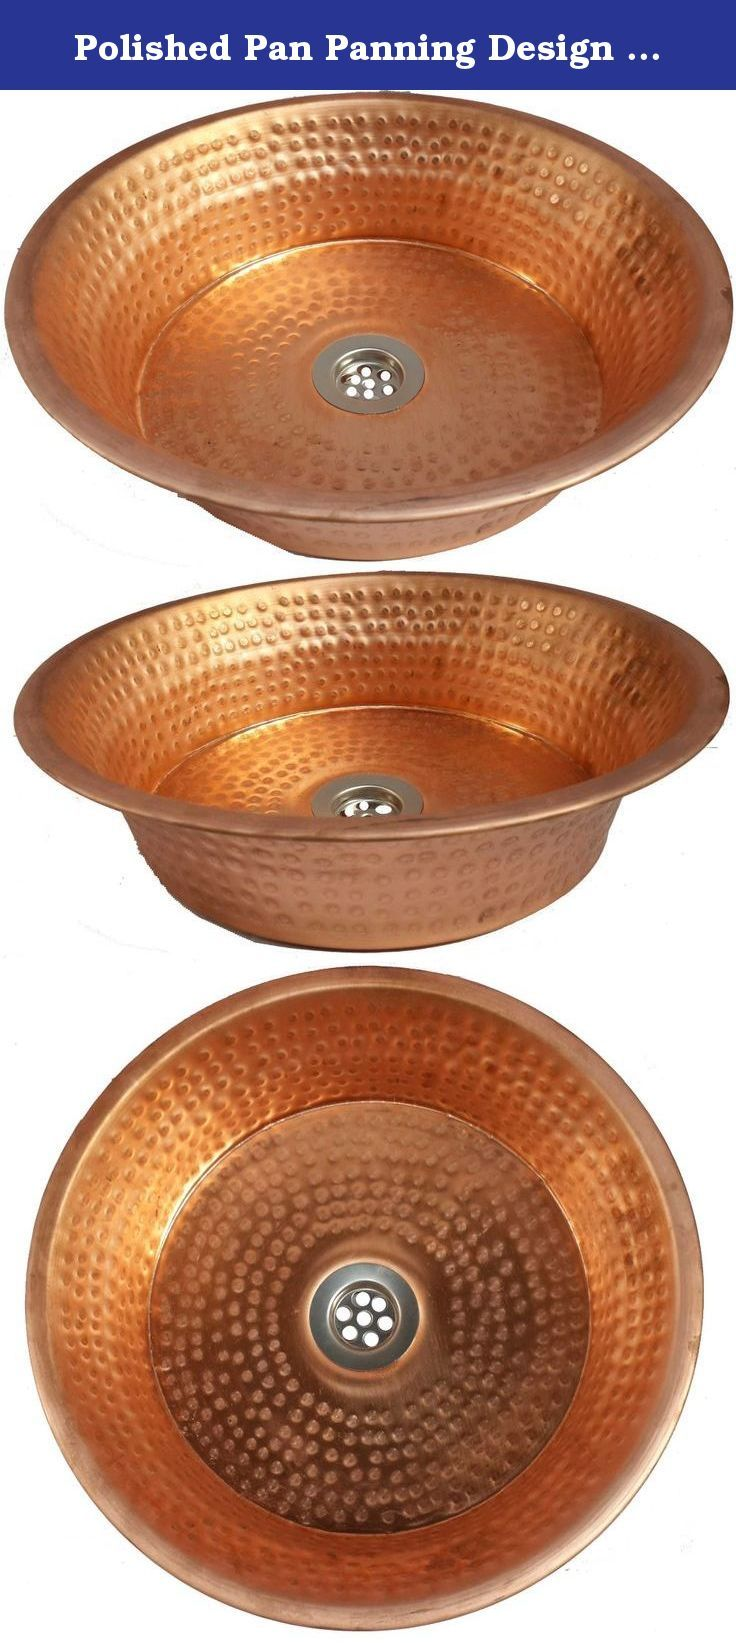 Polished Pan Panning Design Mediterranean Coppersmith Hand Hammered Pure Copper Toilet Bathroom Sink Lavatory Basin by Egypt gift shops. Hand hammered by Egyptian artisans from pure copper. Rolled Edge. Anti bacteria, microbes or viruses. No Lacquer. Easy maintenance. Due to the Artisan Crafted nature of our copper bowls, dimensions may slightly vary.